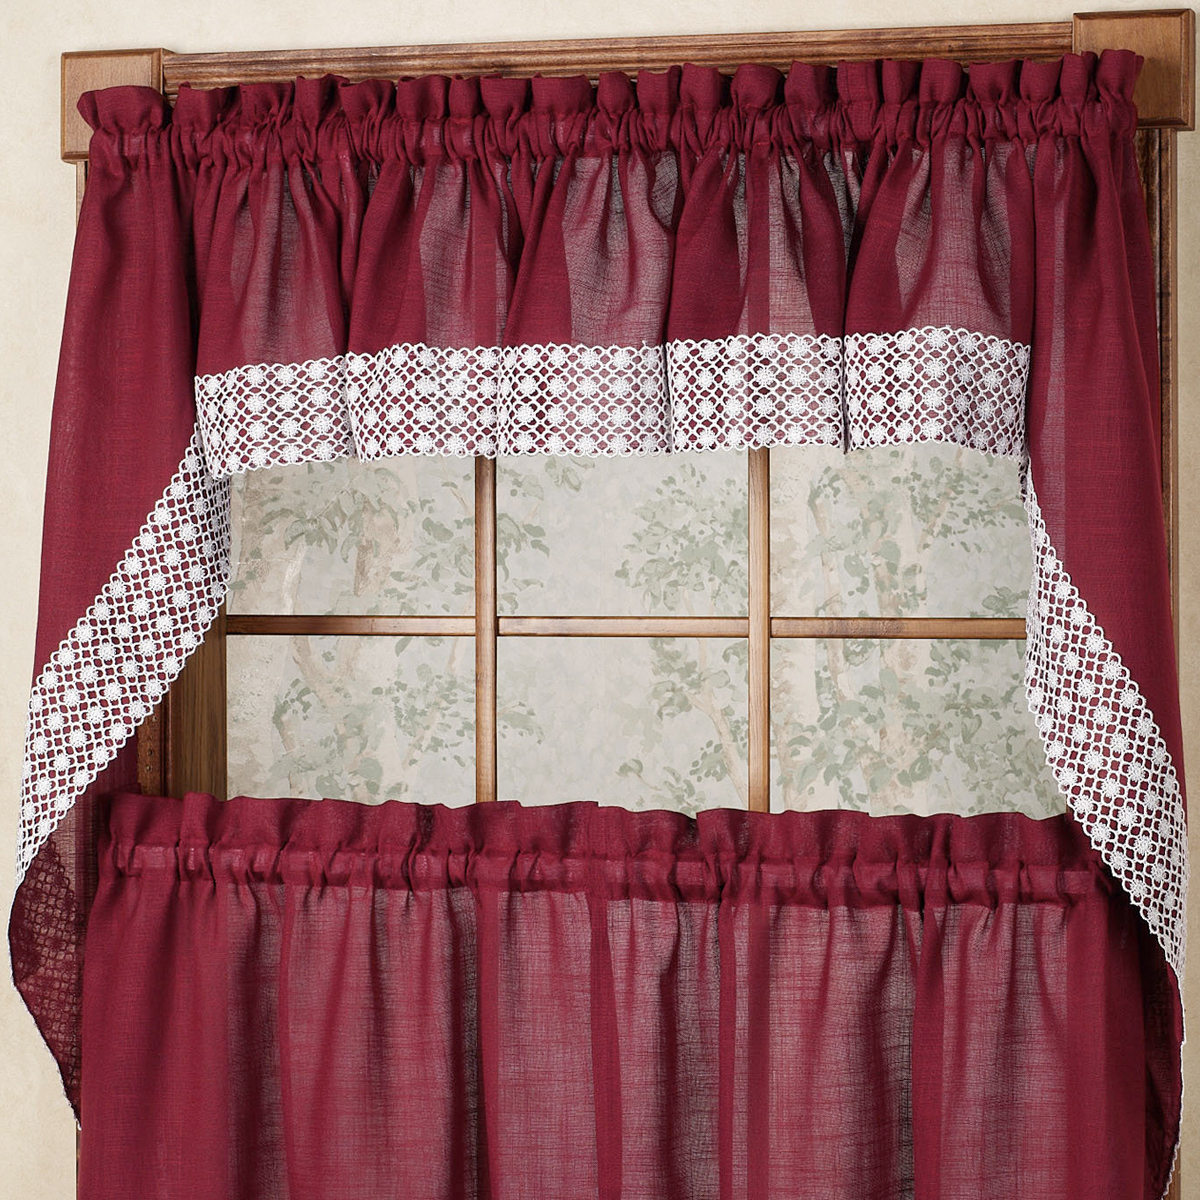 "Well Liked French Vanilla Country Style Curtain Parts With White Daisy Lace Accent Inside Salem Kitchen Window Curtain W/ Lace Trim – 38"" Swag Pair Burgundy (View 20 of 20)"